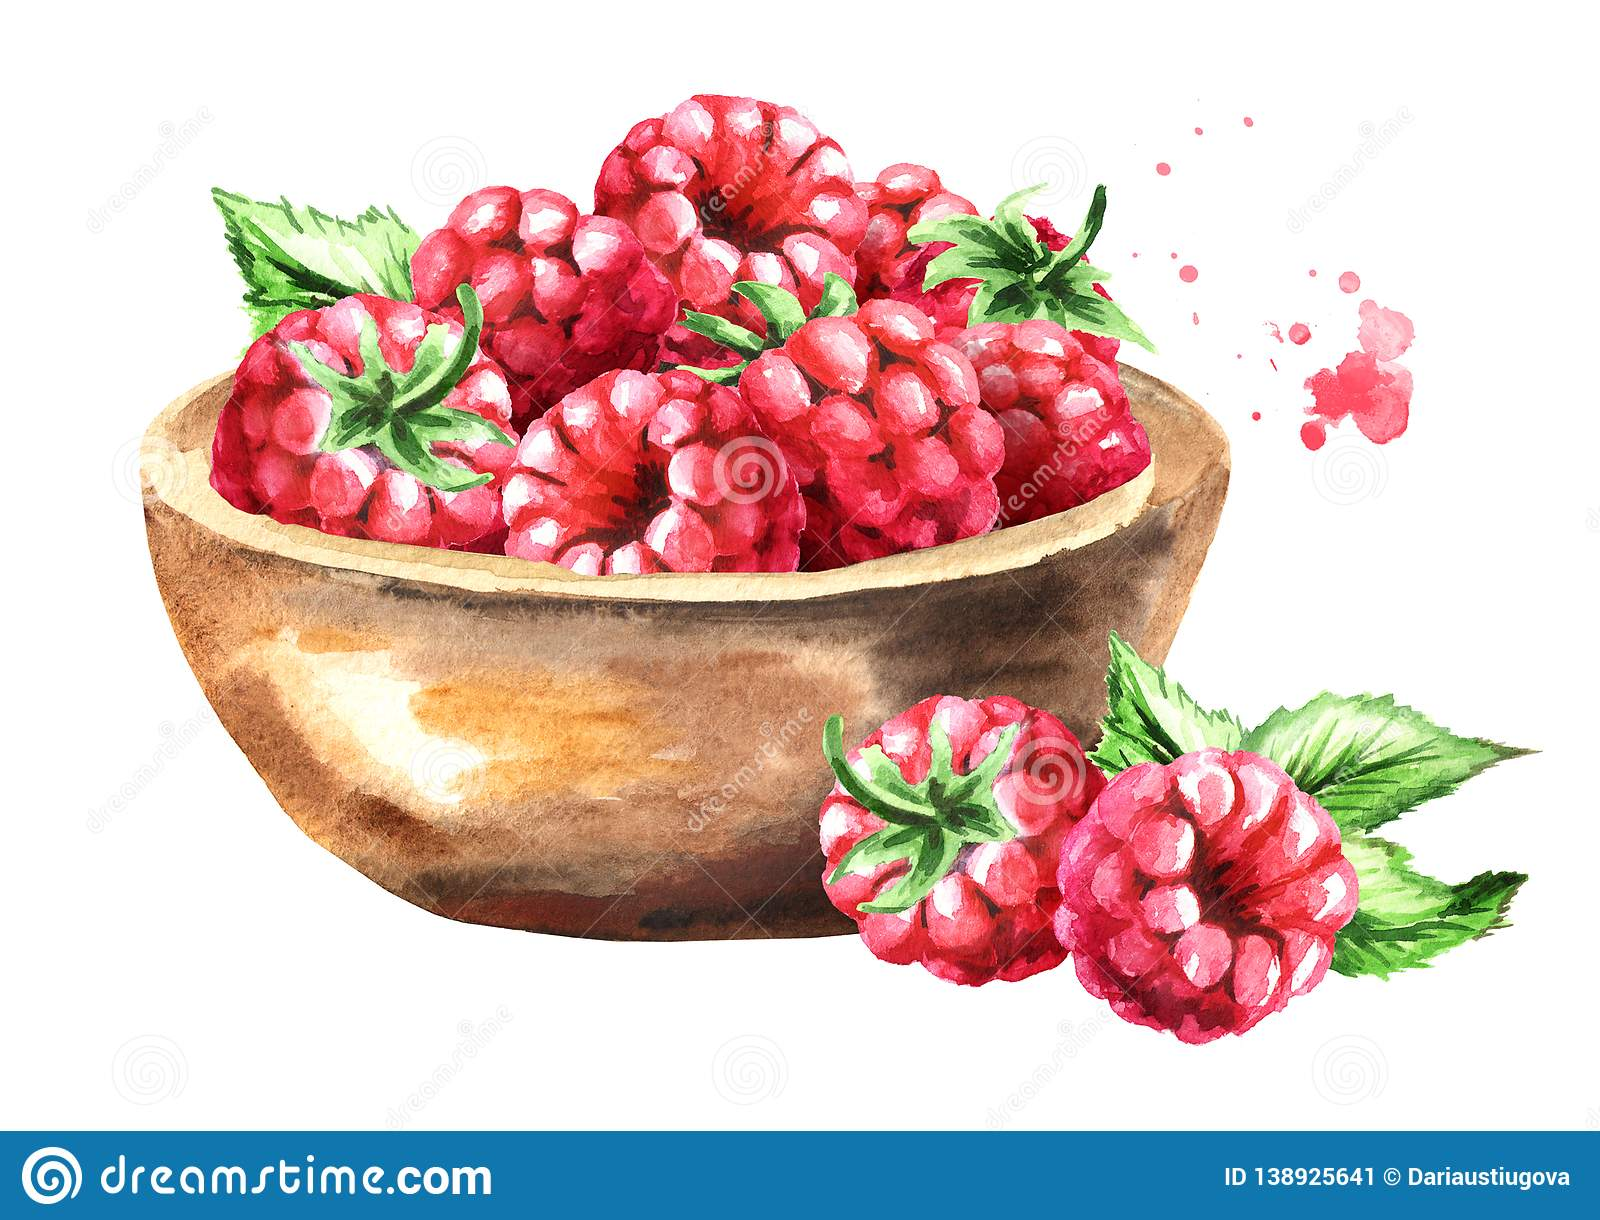 Bowl with ripe raspberry. Watercolor hand drawn illustration, isolated on white background